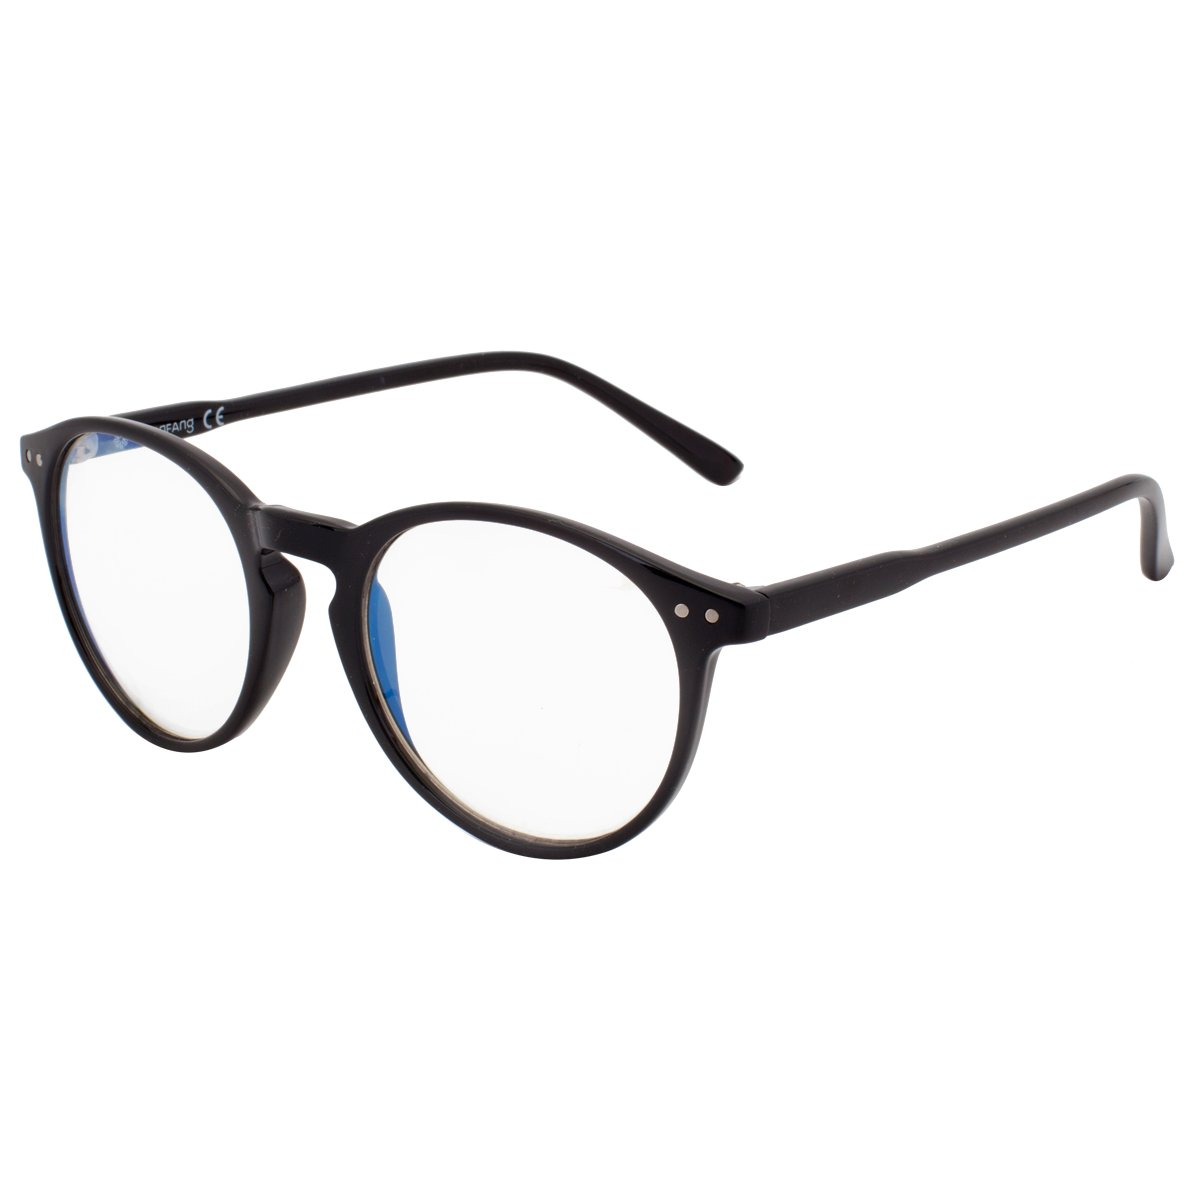 7ef0dd346ca5 VIVIENFANG Blue Light Filter Computer Glasses Clear Lens Horn Rimmed Round  Optical Glasses Frame TR90 T1931A Black: Amazon.ca: Clothing & Accessories